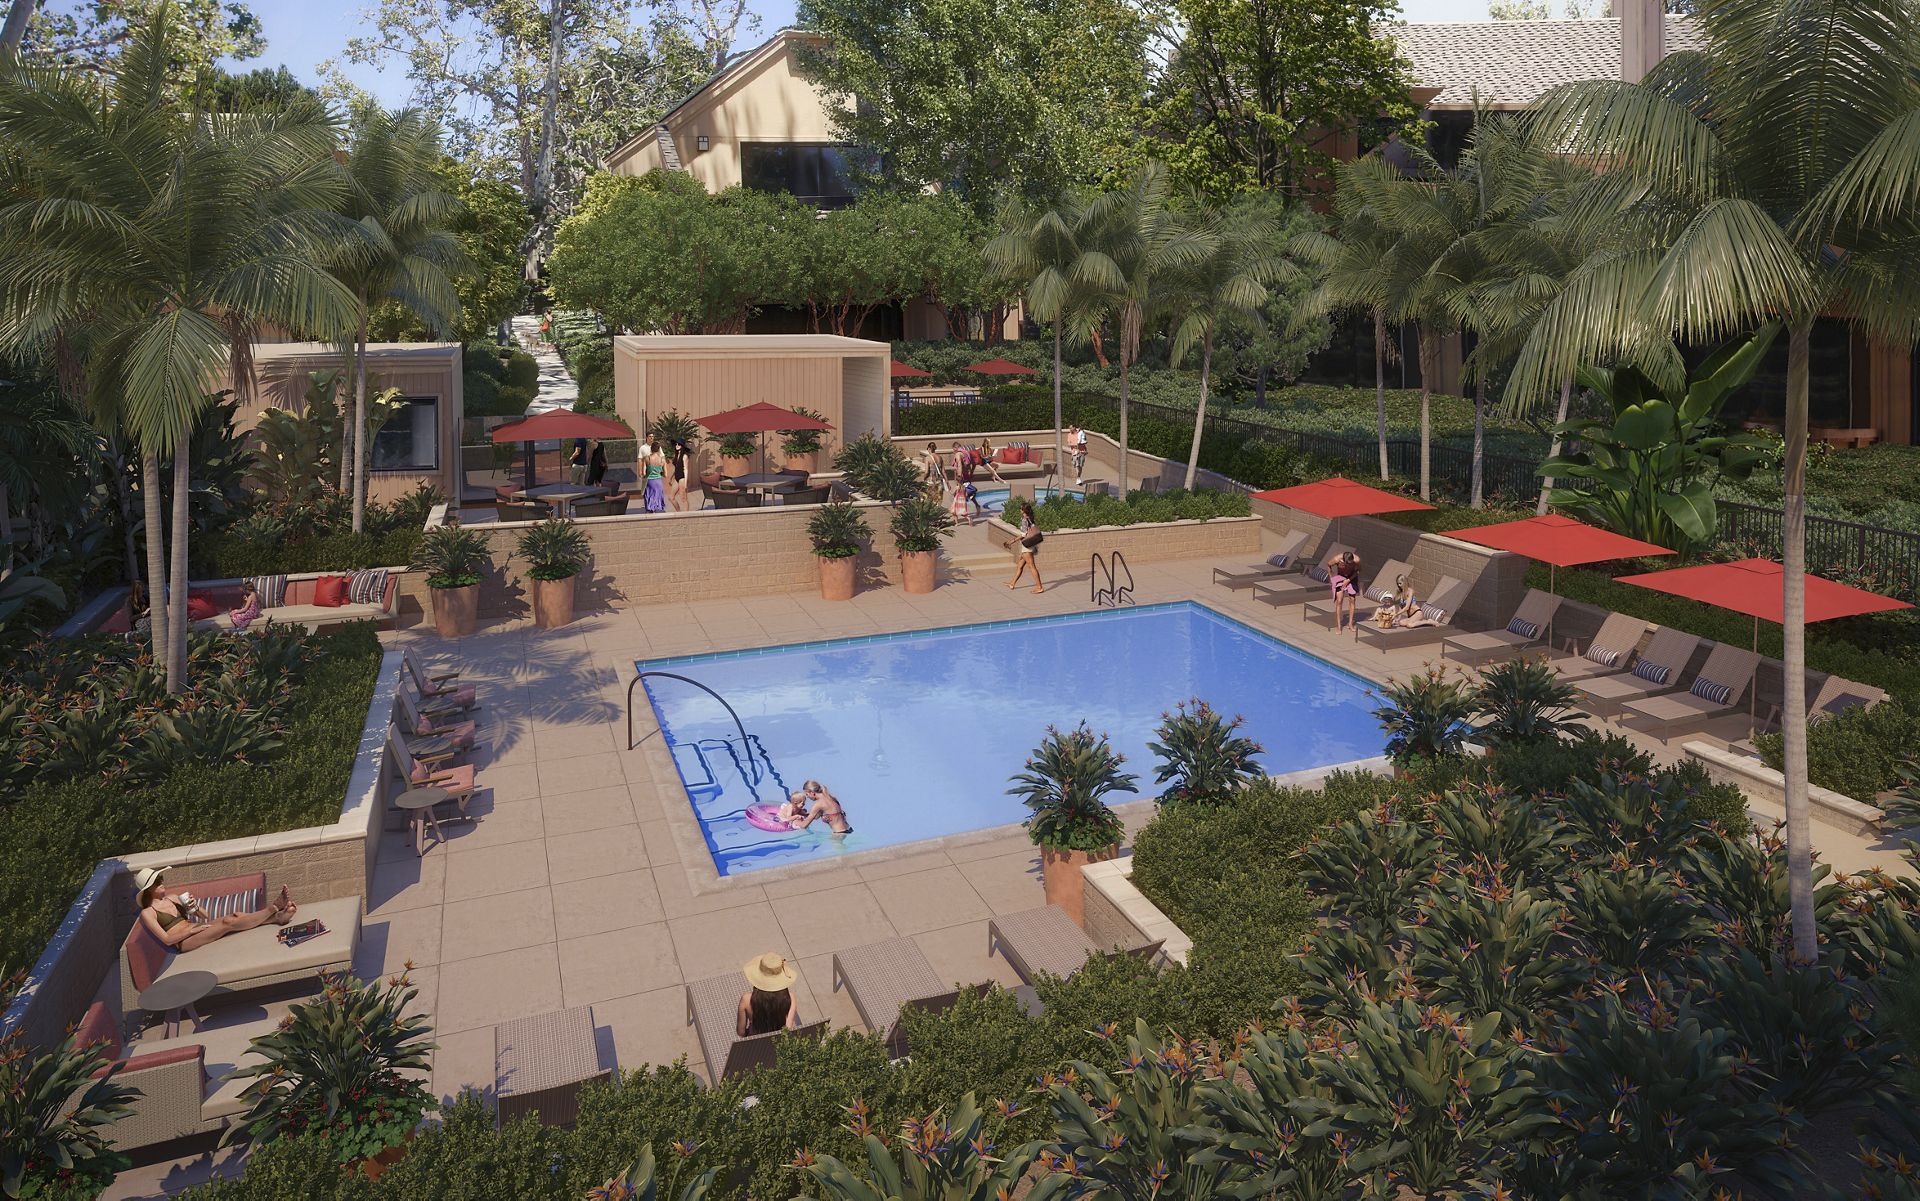 Rendering of secondary pool at The Bays Apartment Homes in Newport Beach, CA.